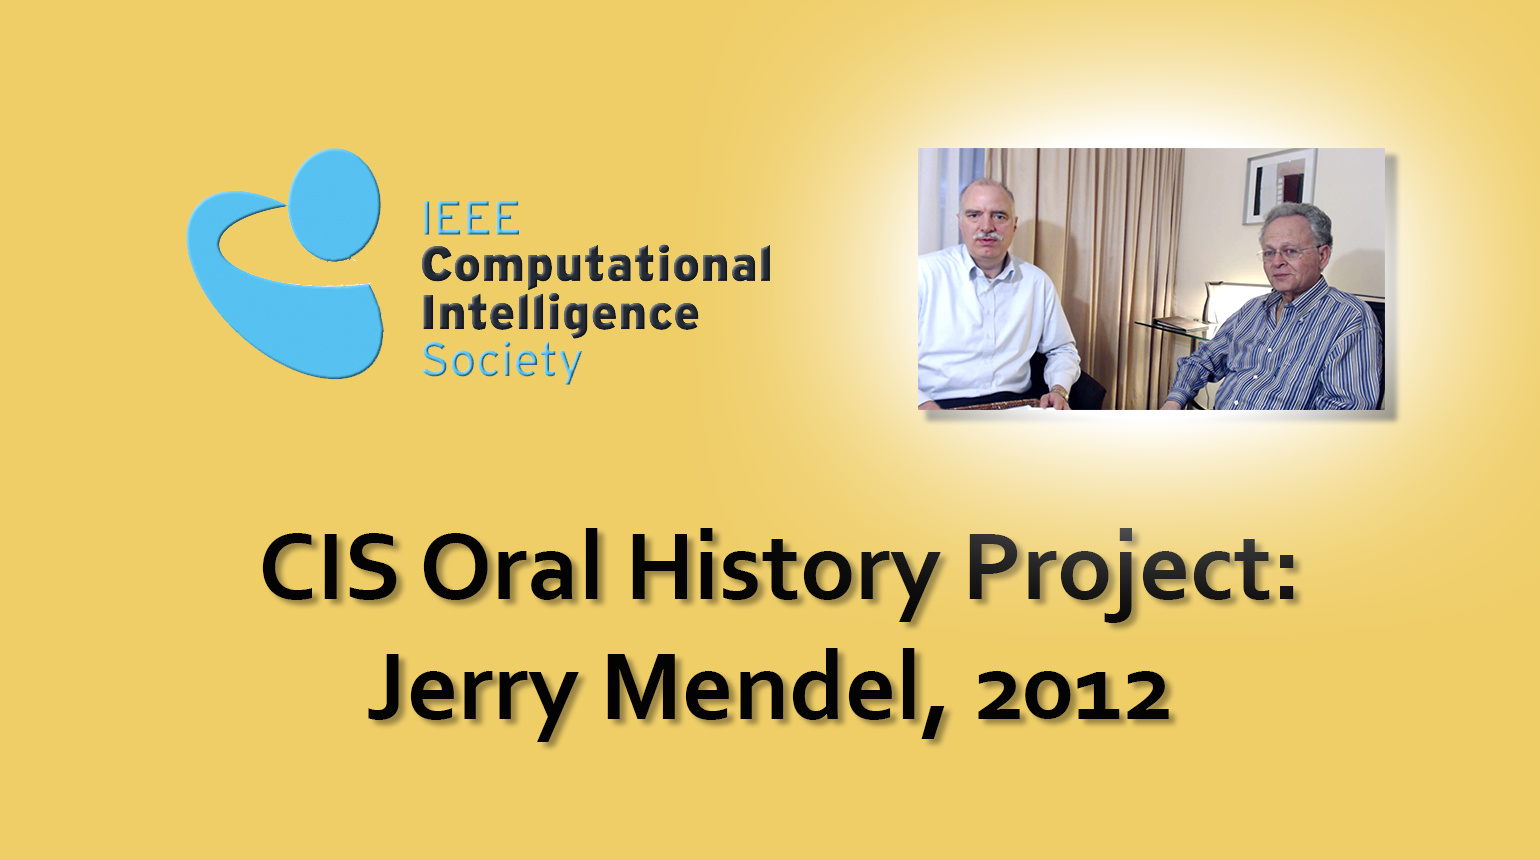 Interview with Jerry Mendel, 2012: CIS Oral History Project